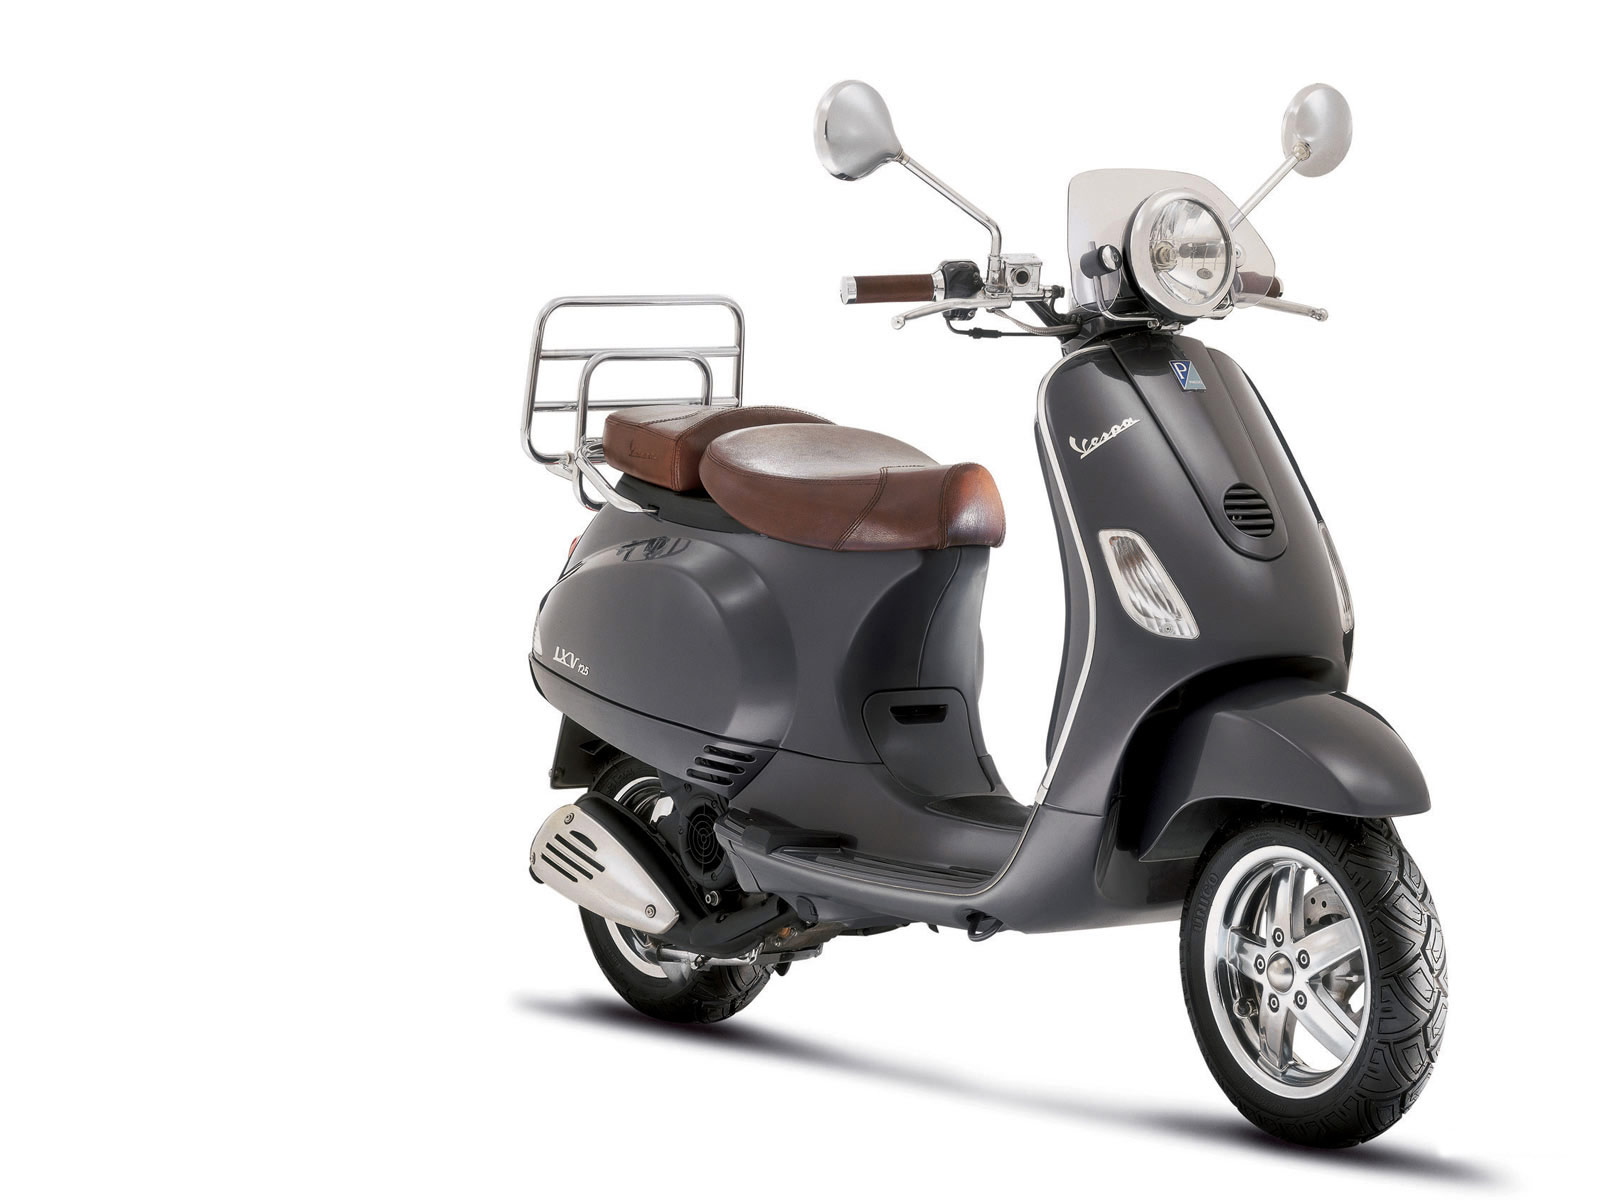 Accident Lawyers Info 2006 Vespa Lxv Scooter Pictures